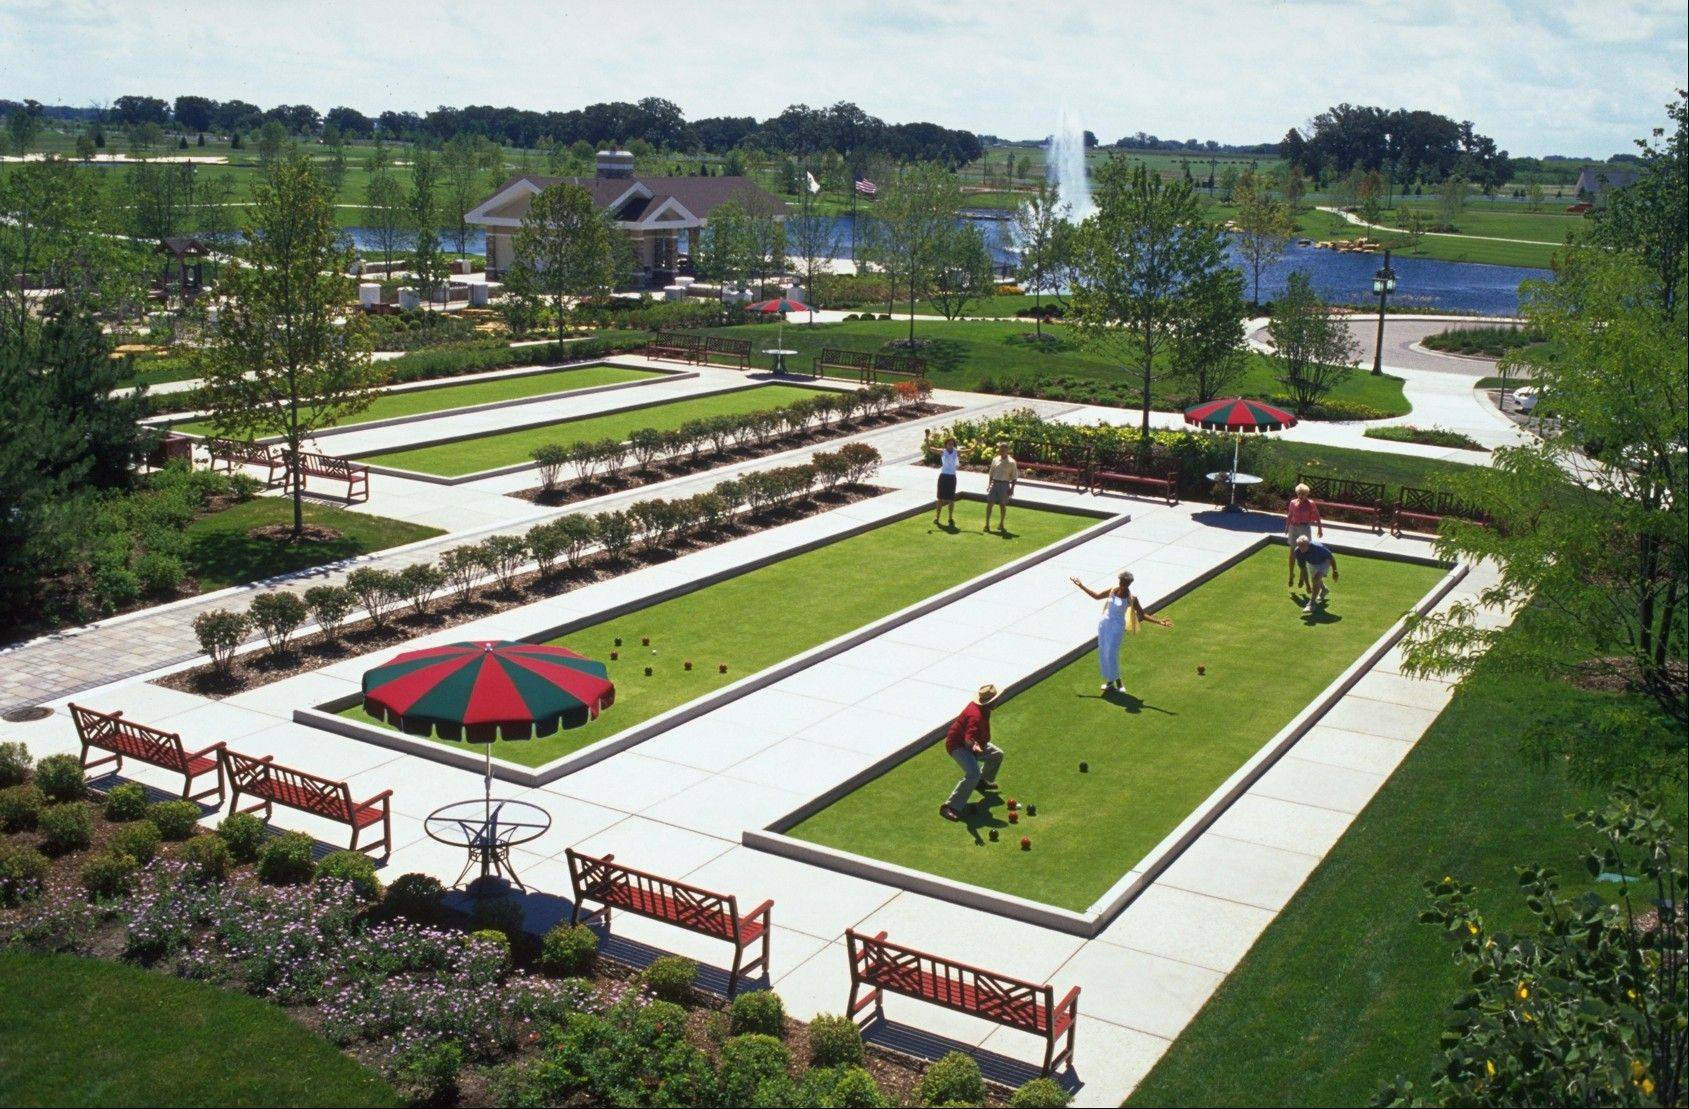 Sun City in Huntley offers many options to keep active, including boccie courts.